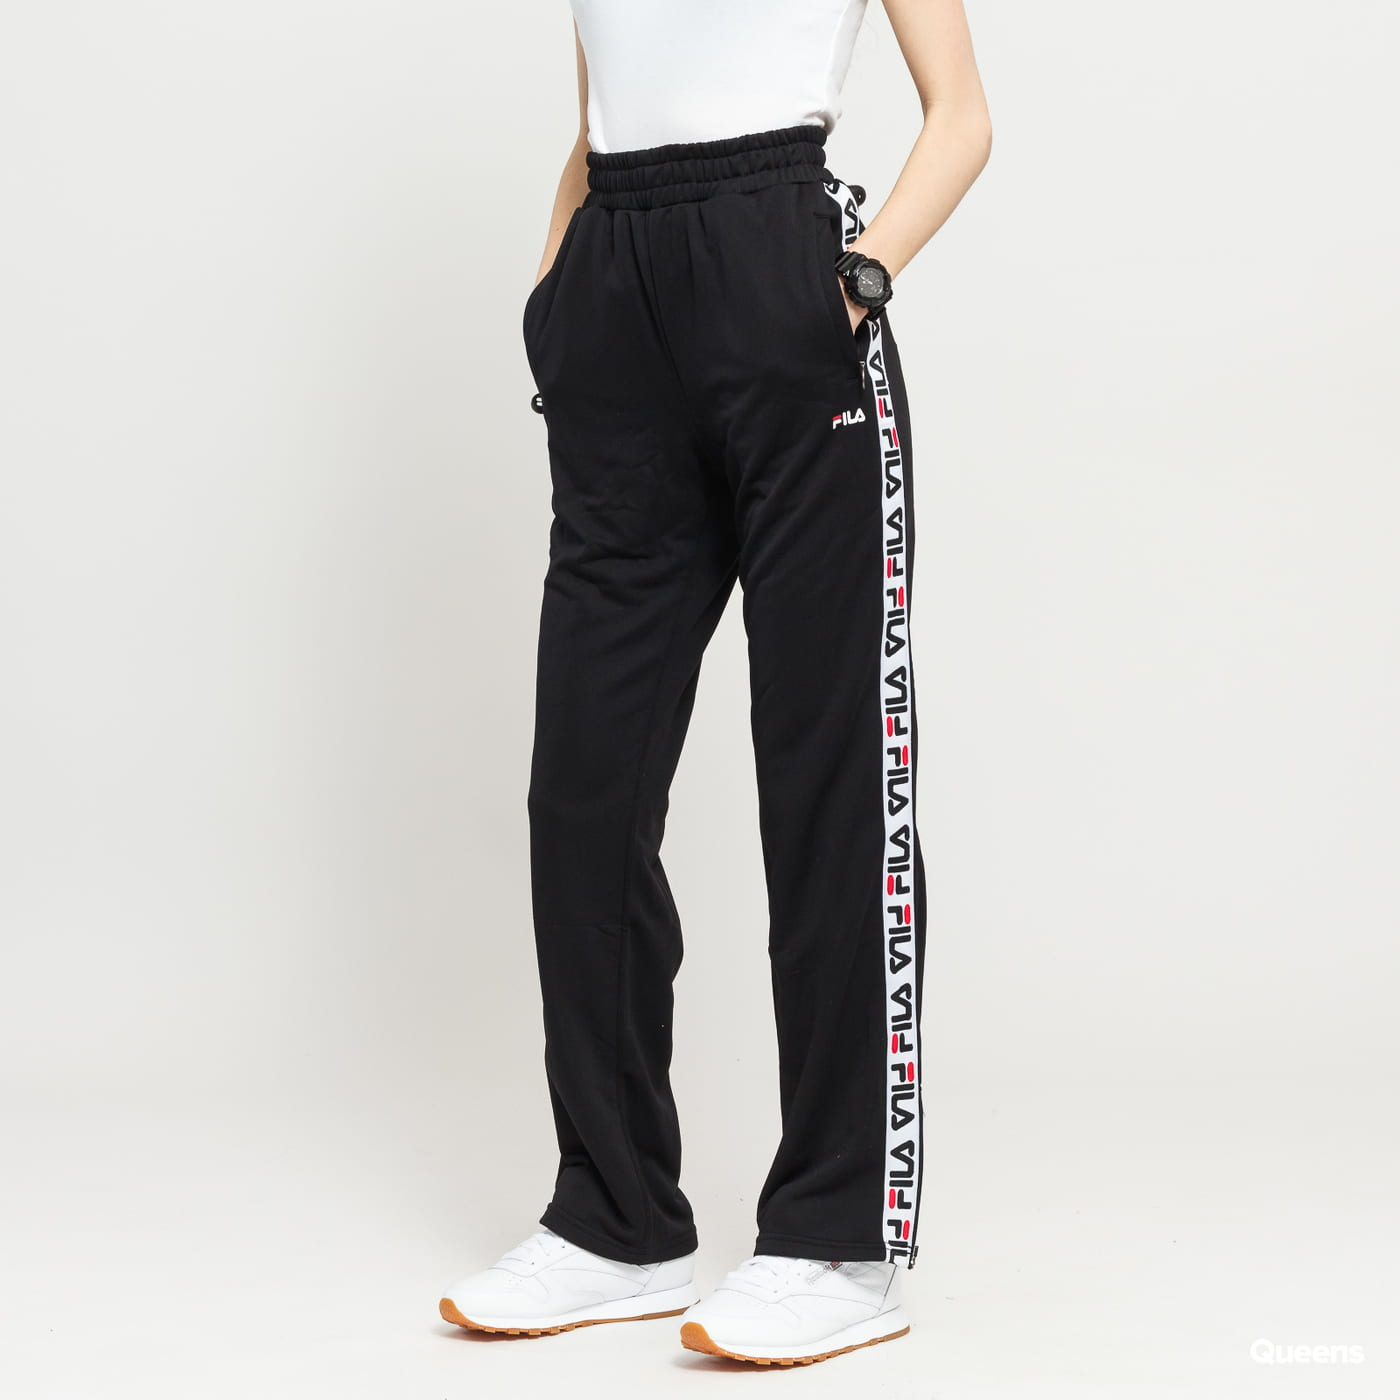 c9de8e15e130 Sweatpants Fila W Thora Track Pants black (687068 002) – Queens 💚